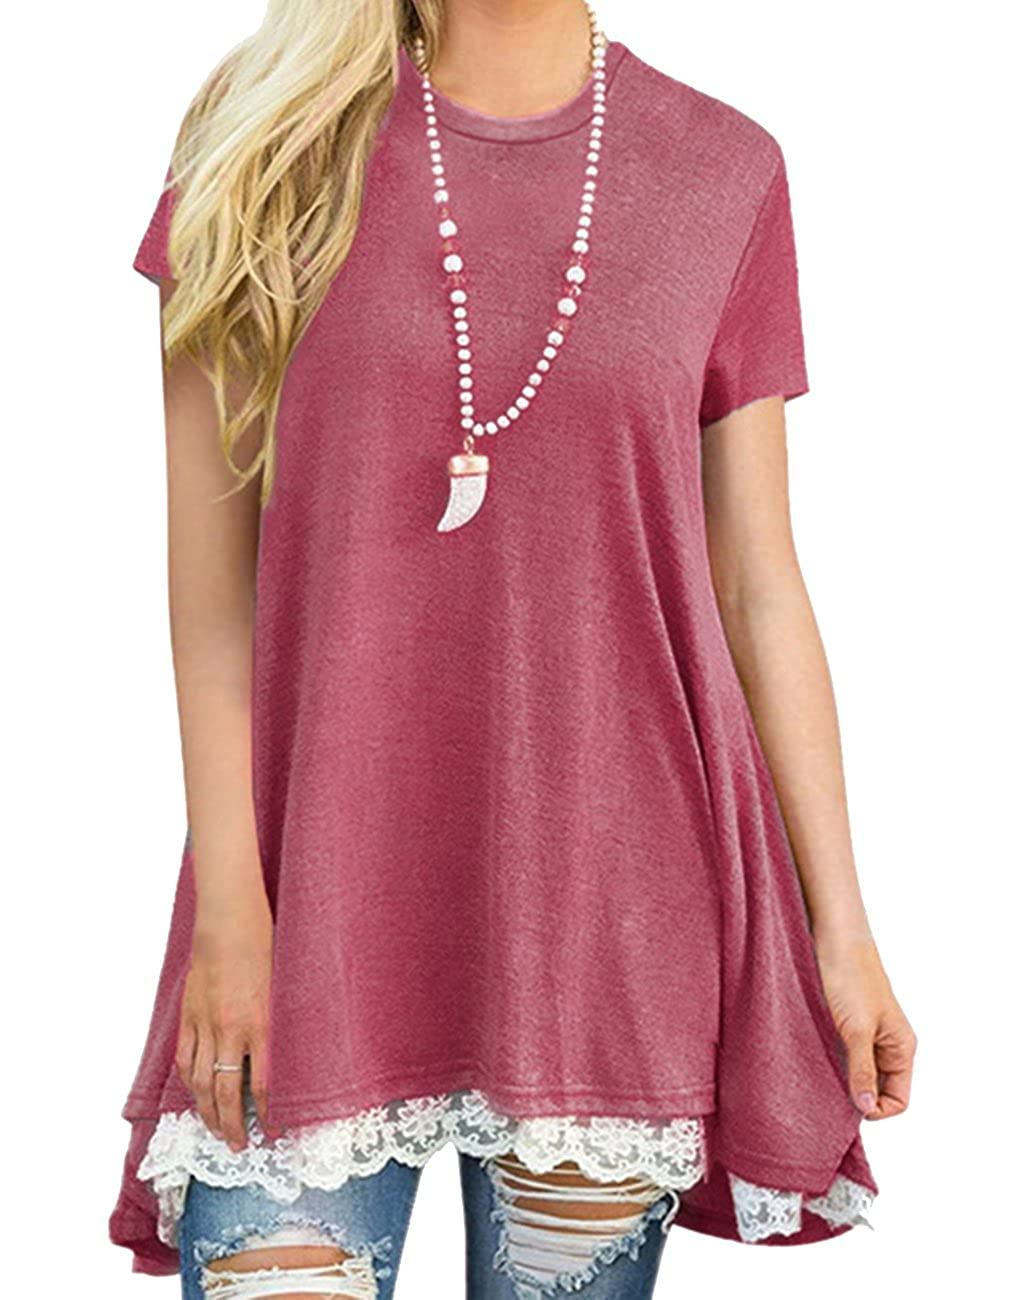 Wine Red Defal Womens Summer Short Sleeve Lace Splicing Blouse High Low Hem Casual Tunic Top